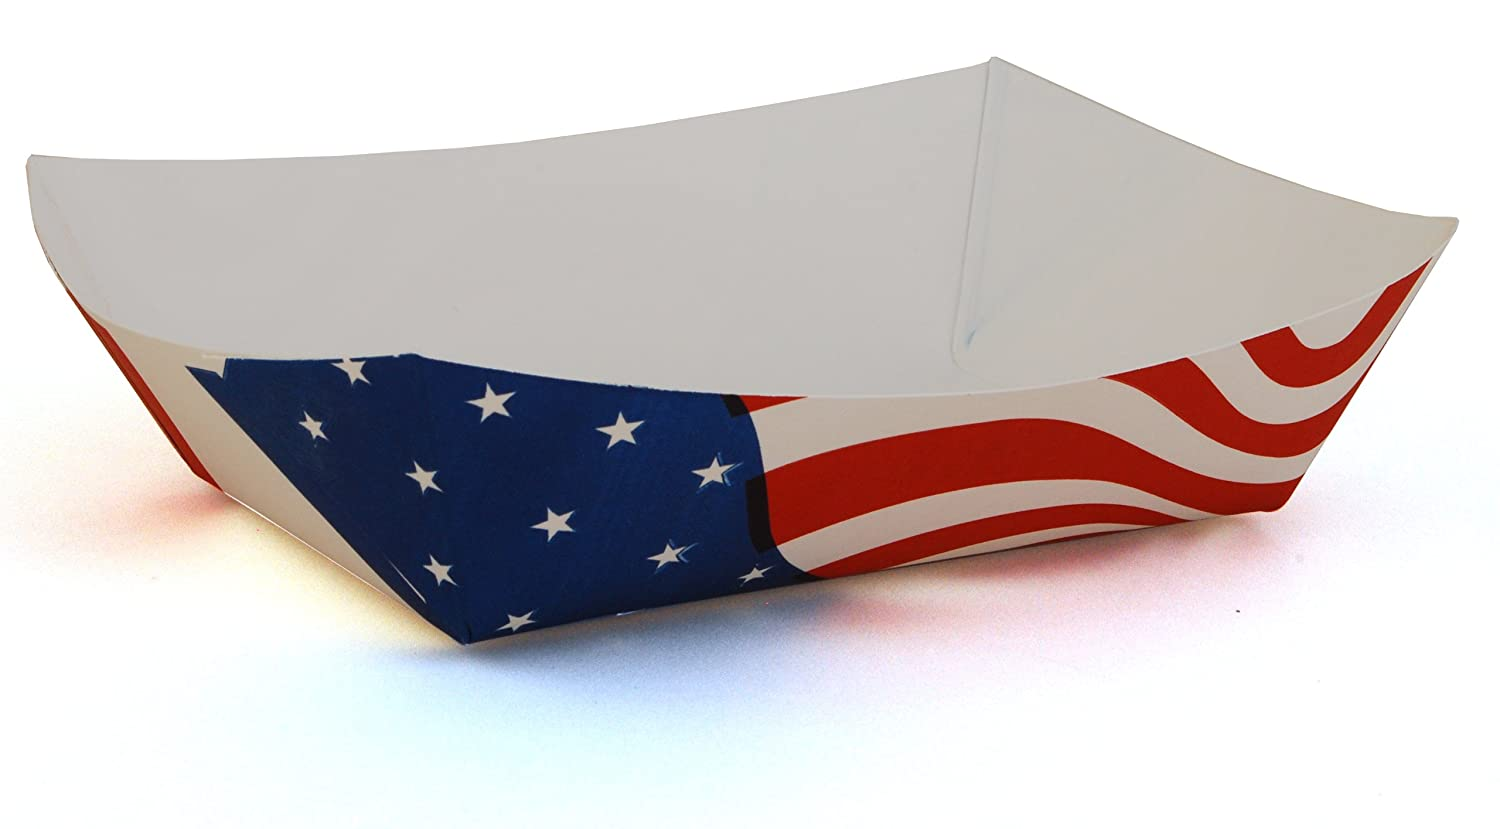 Southern Champion Tray 0537 #500 Paperboard USA Flag Food Tray, 5 lb Capacity (Case of 500)